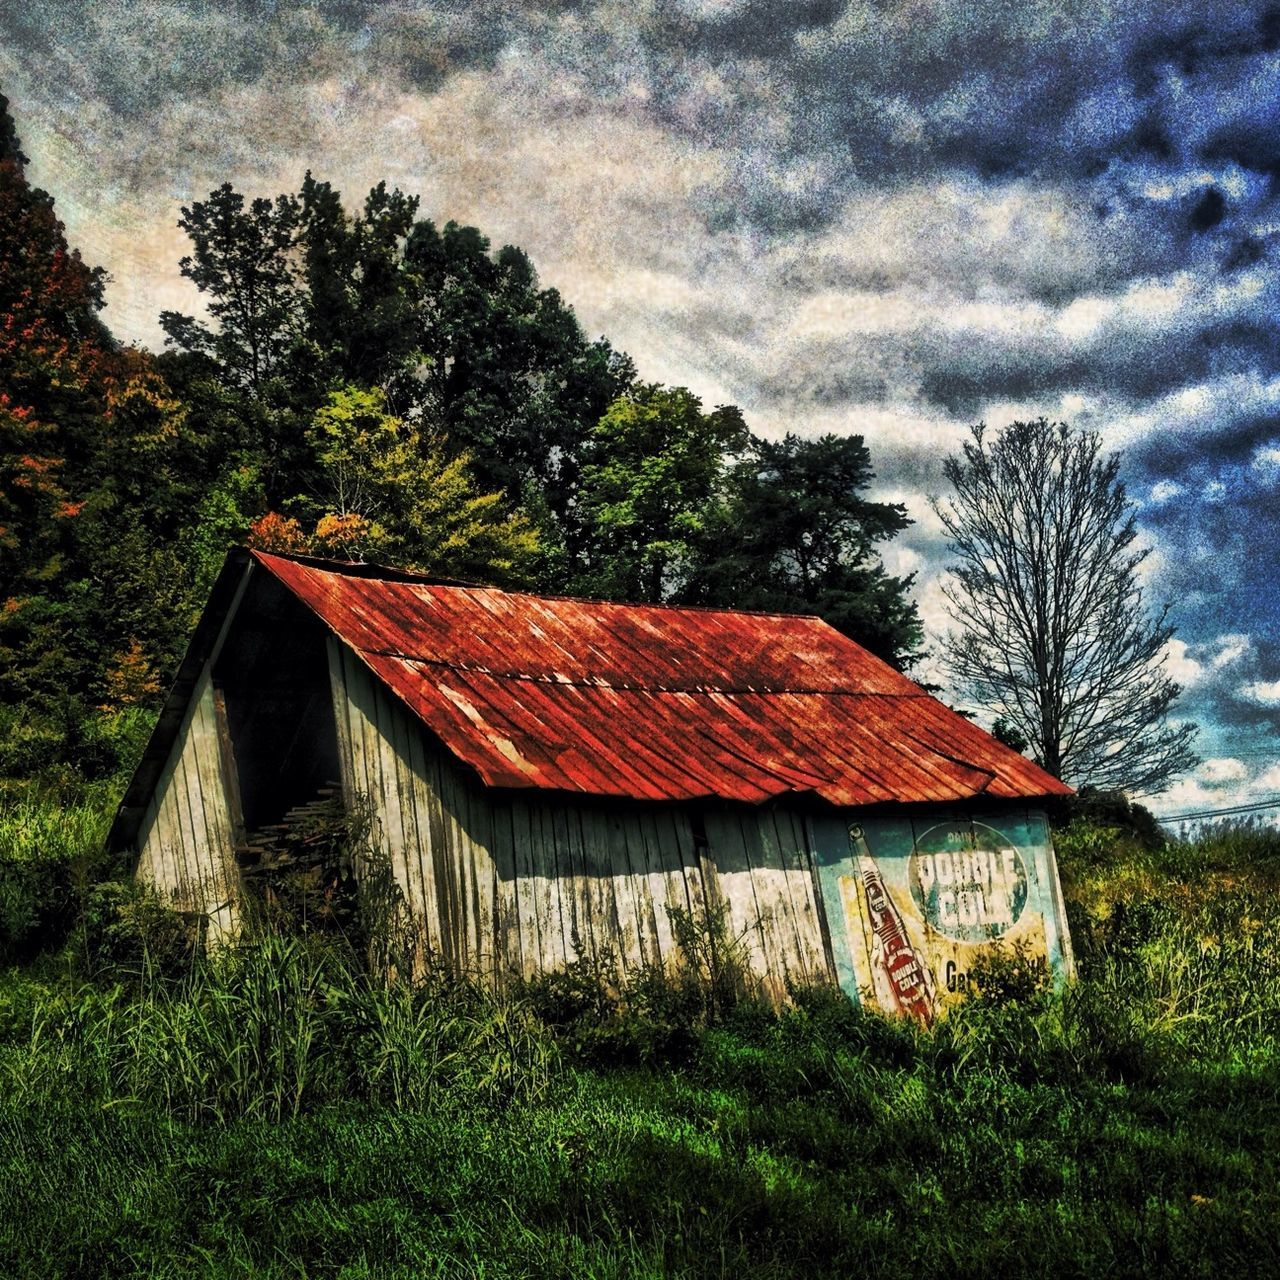 tree, architecture, built structure, building exterior, no people, house, sky, day, roof, grass, field, outdoors, barn, growth, landscape, nature, beauty in nature